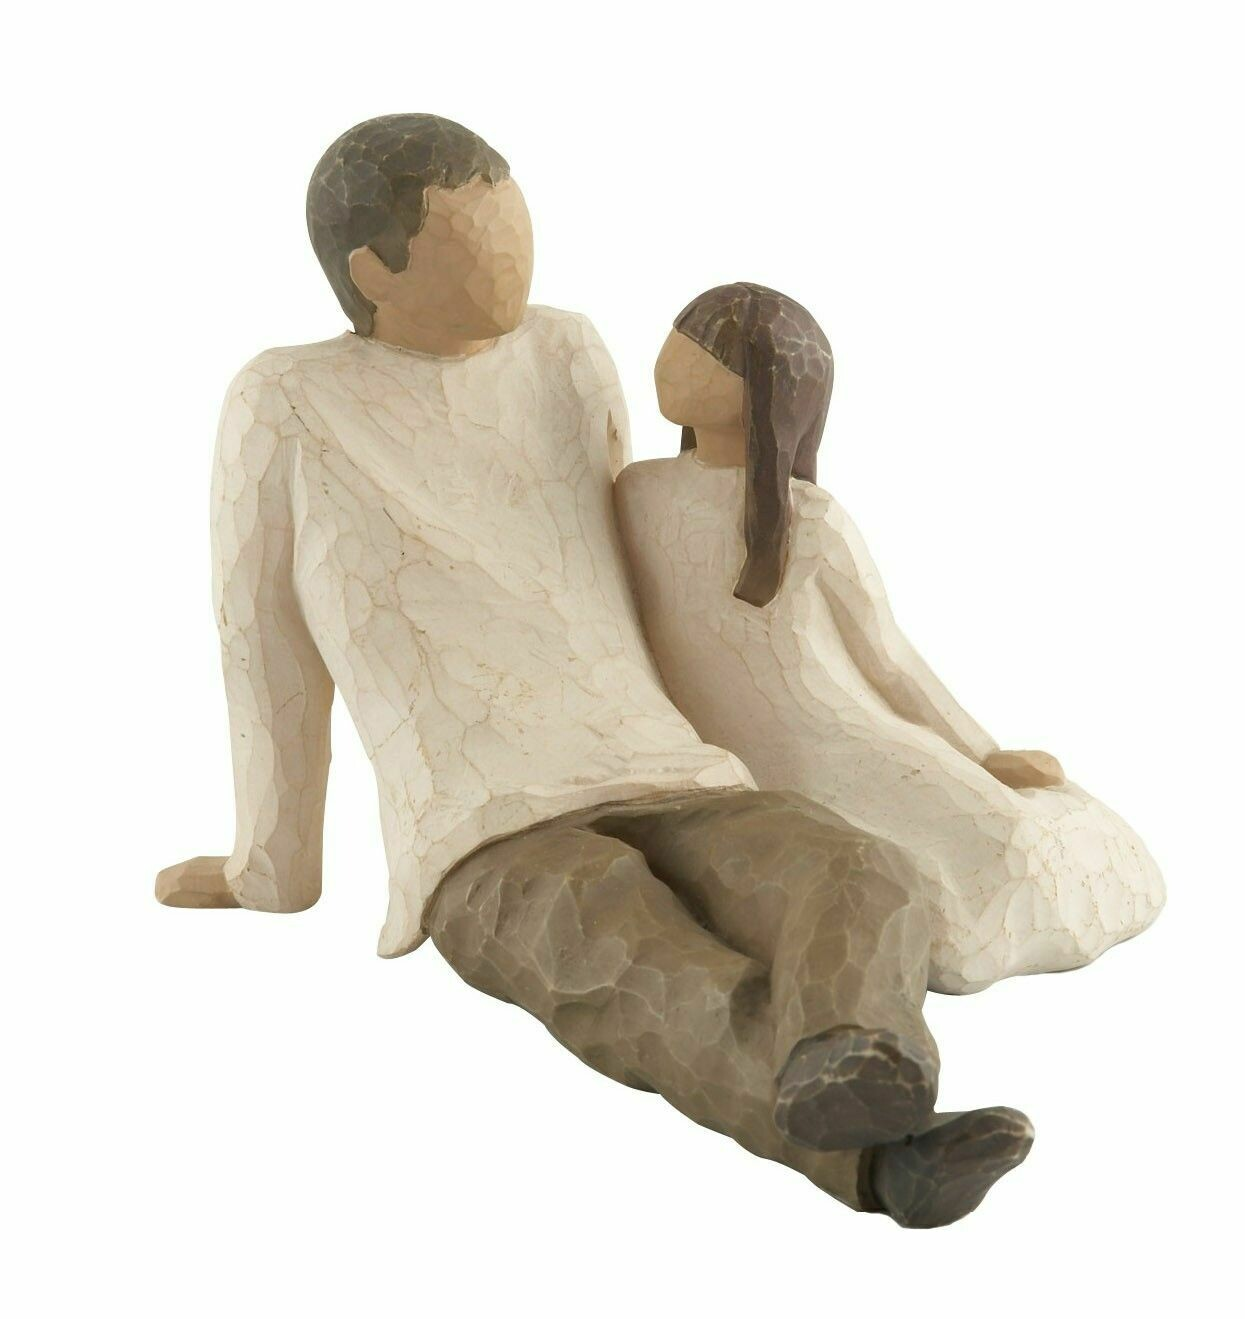 Willow Tree: Father and Daughter - Father sitting with daughter